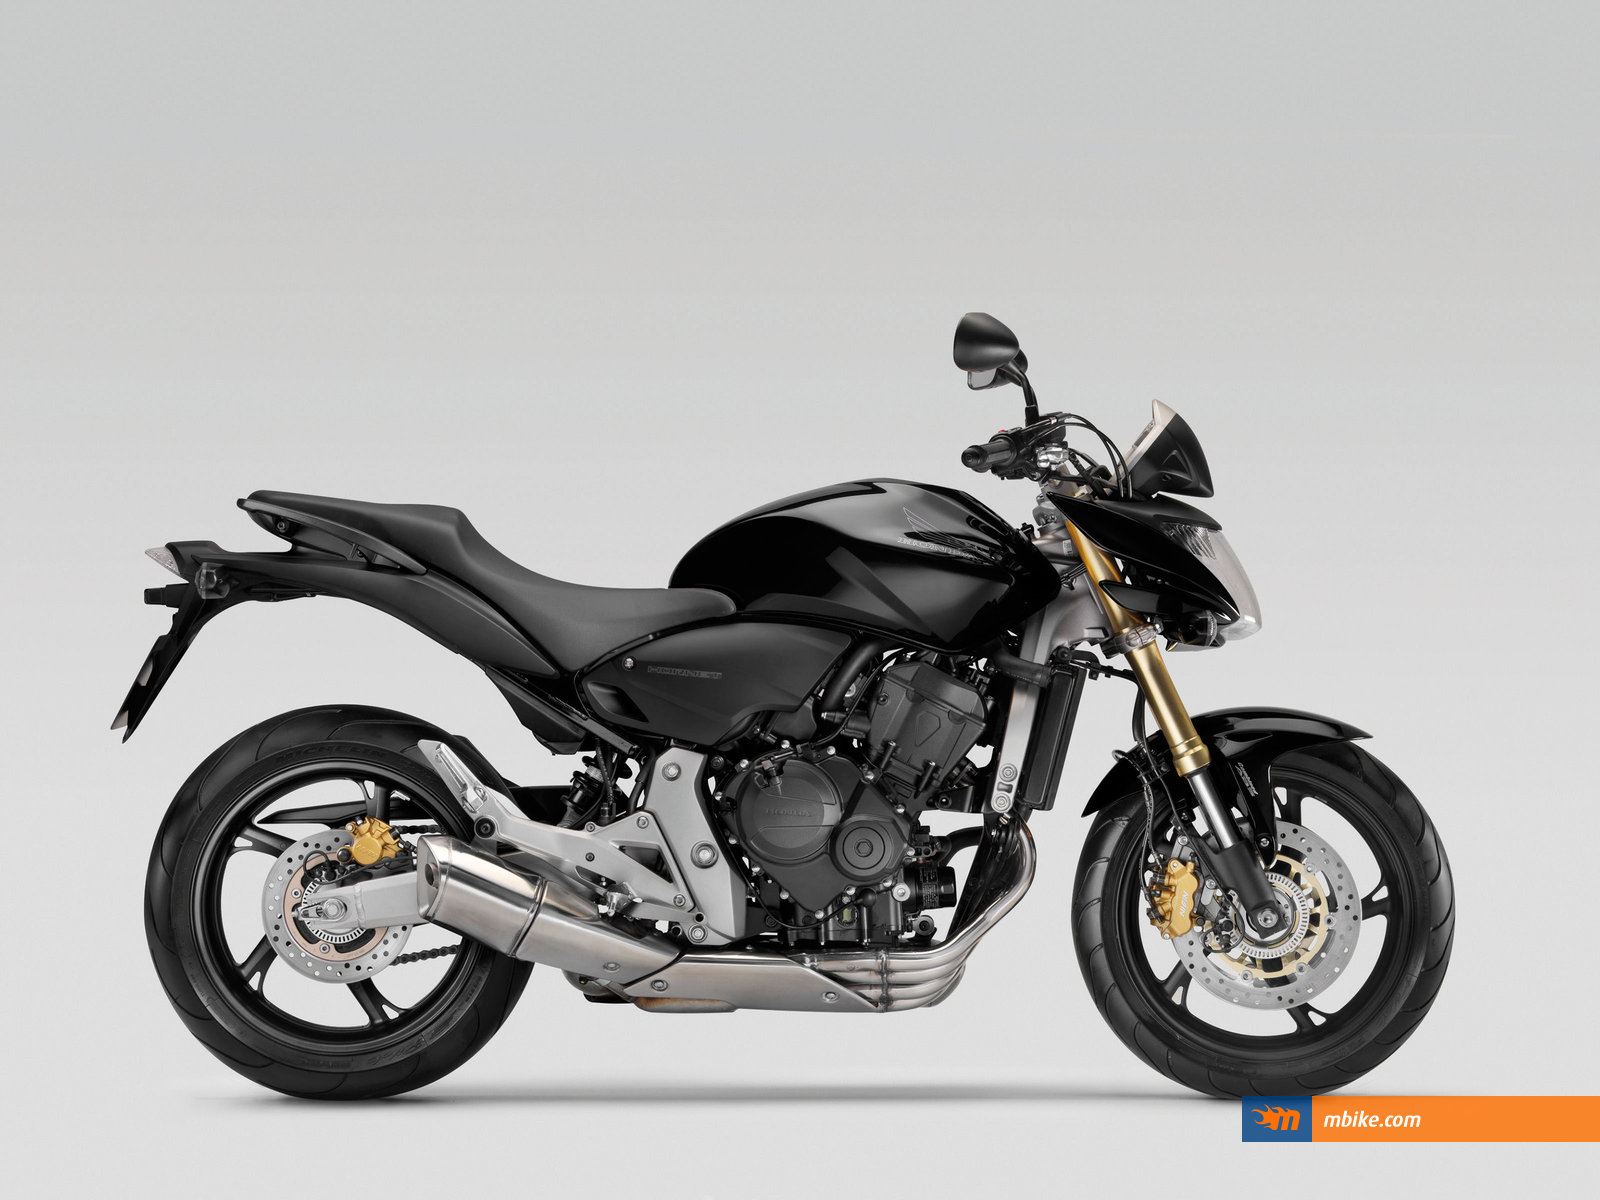 2008 honda cb 600 f abs hornet wallpaper. Black Bedroom Furniture Sets. Home Design Ideas